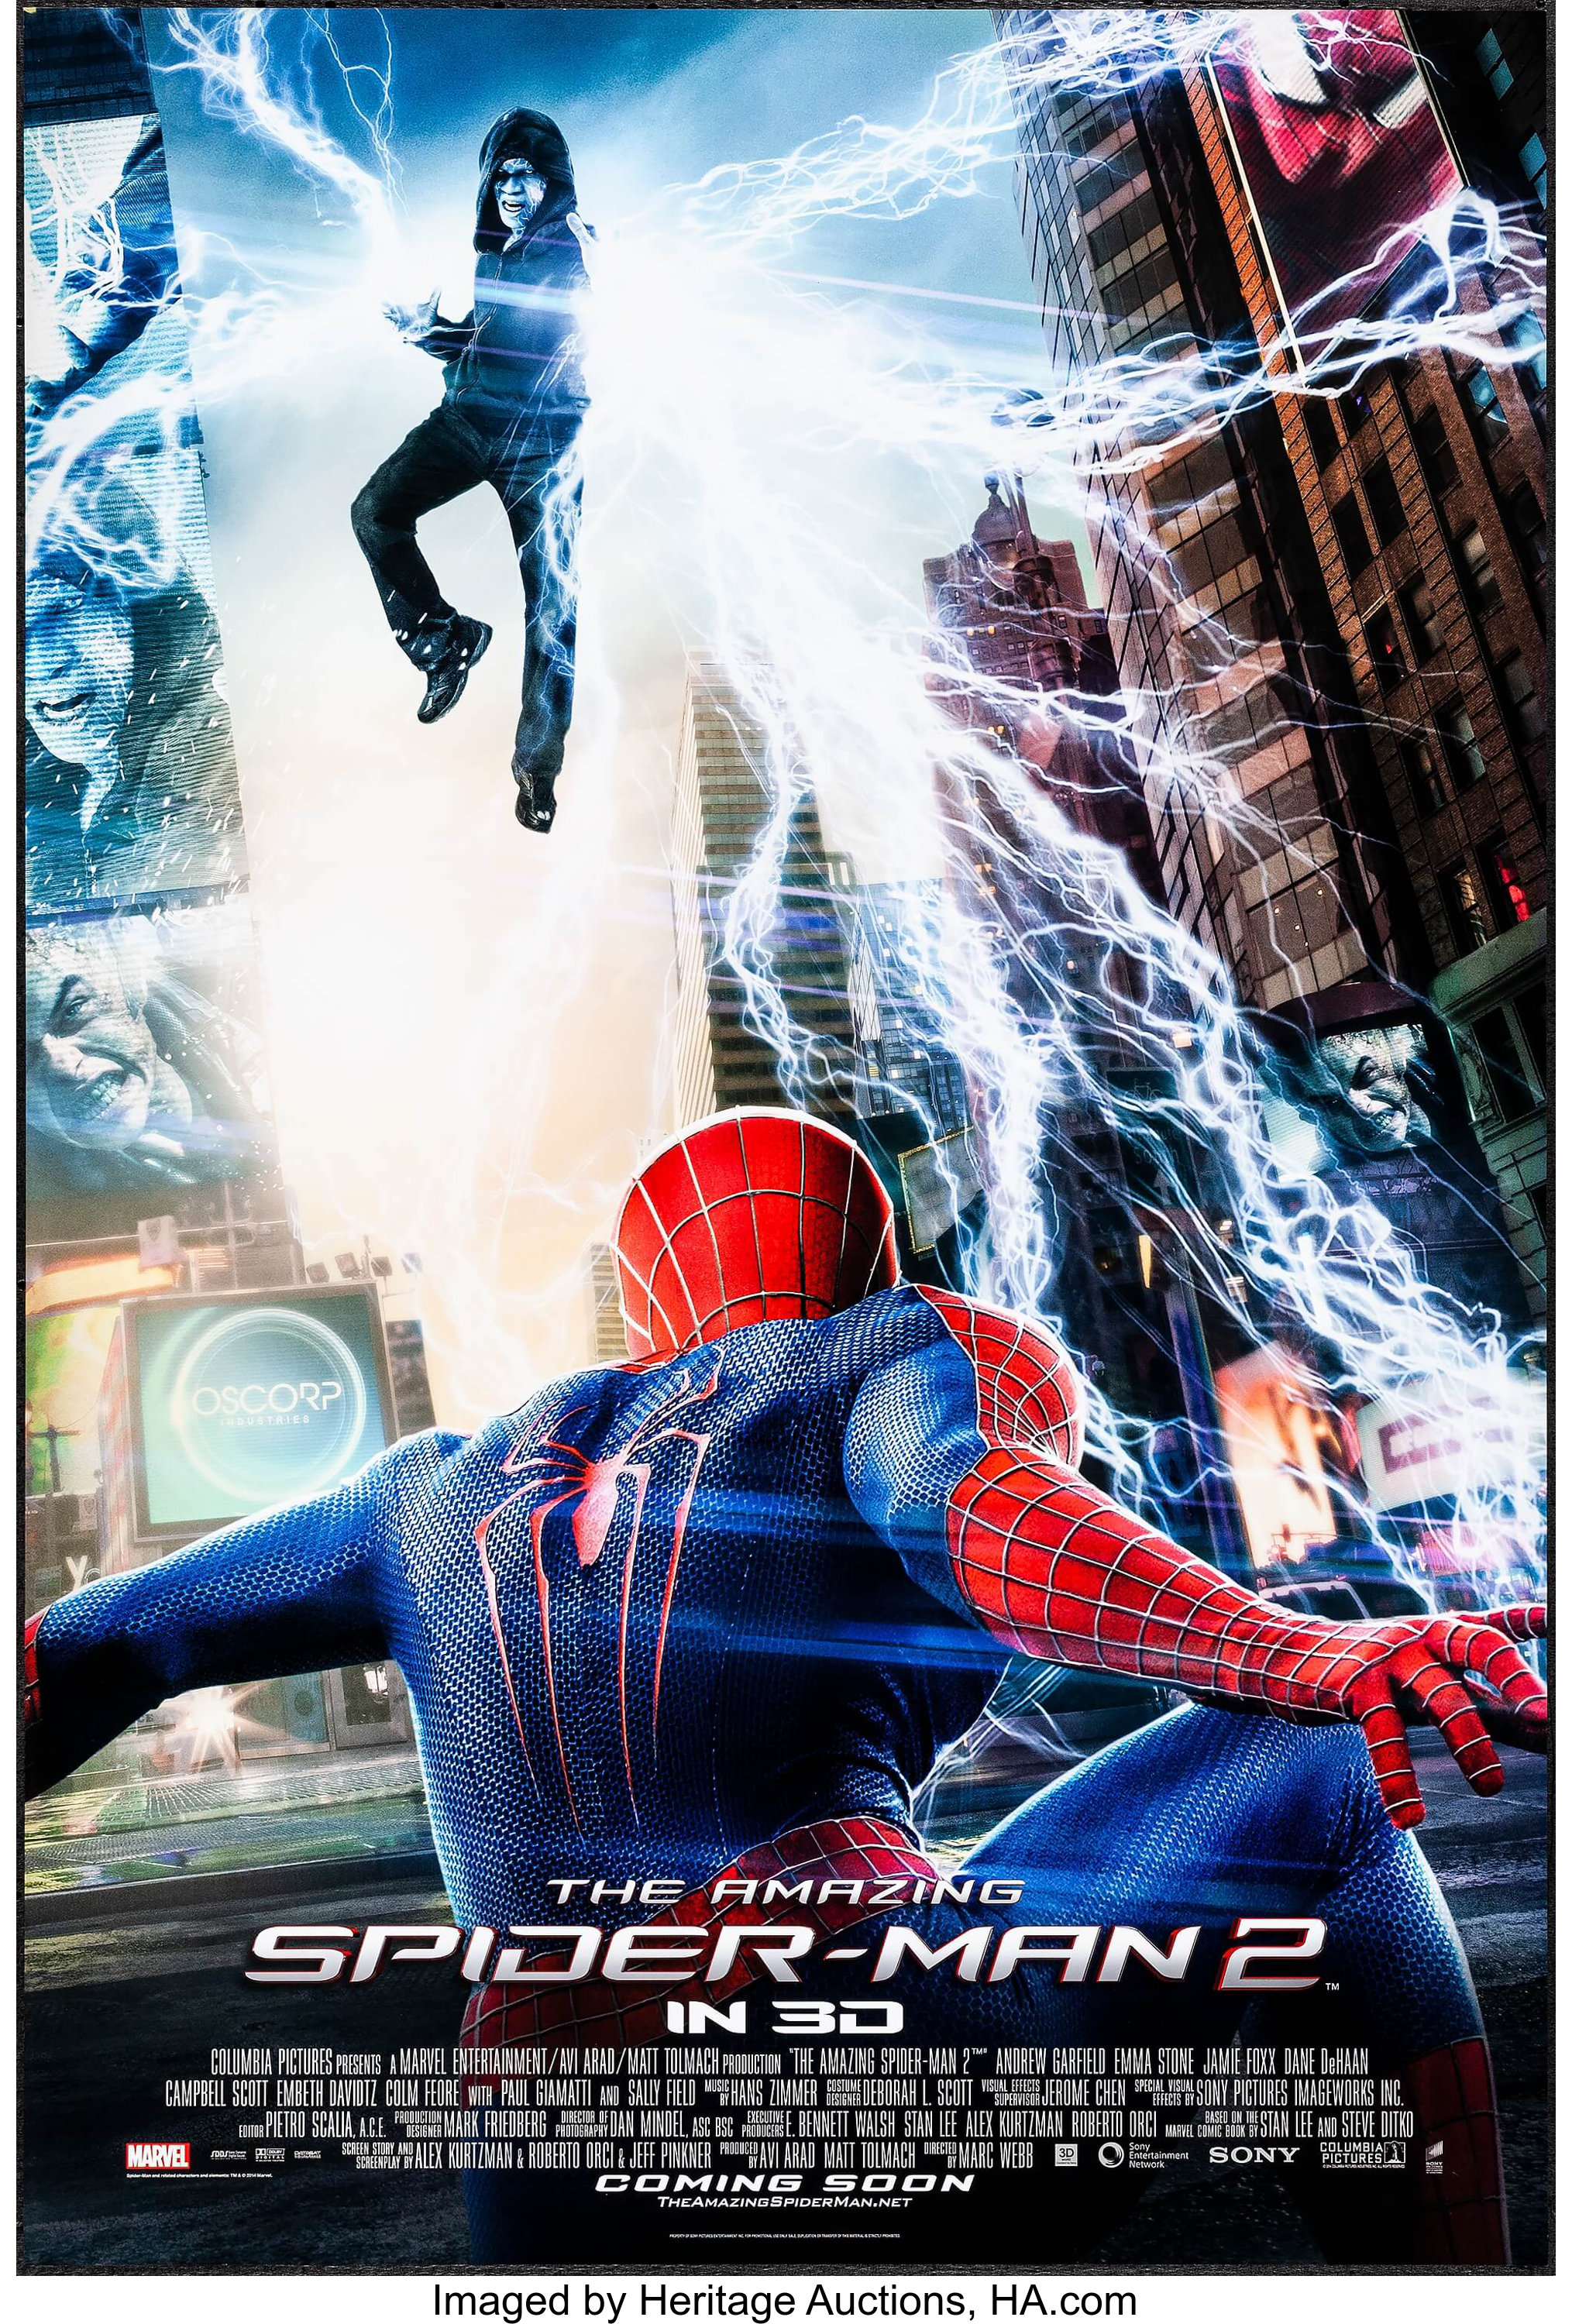 The Amazing Spider Man 2 Sony 2014 One Sheet 27 X 40 Ds Lot 51019 Heritage Auctions